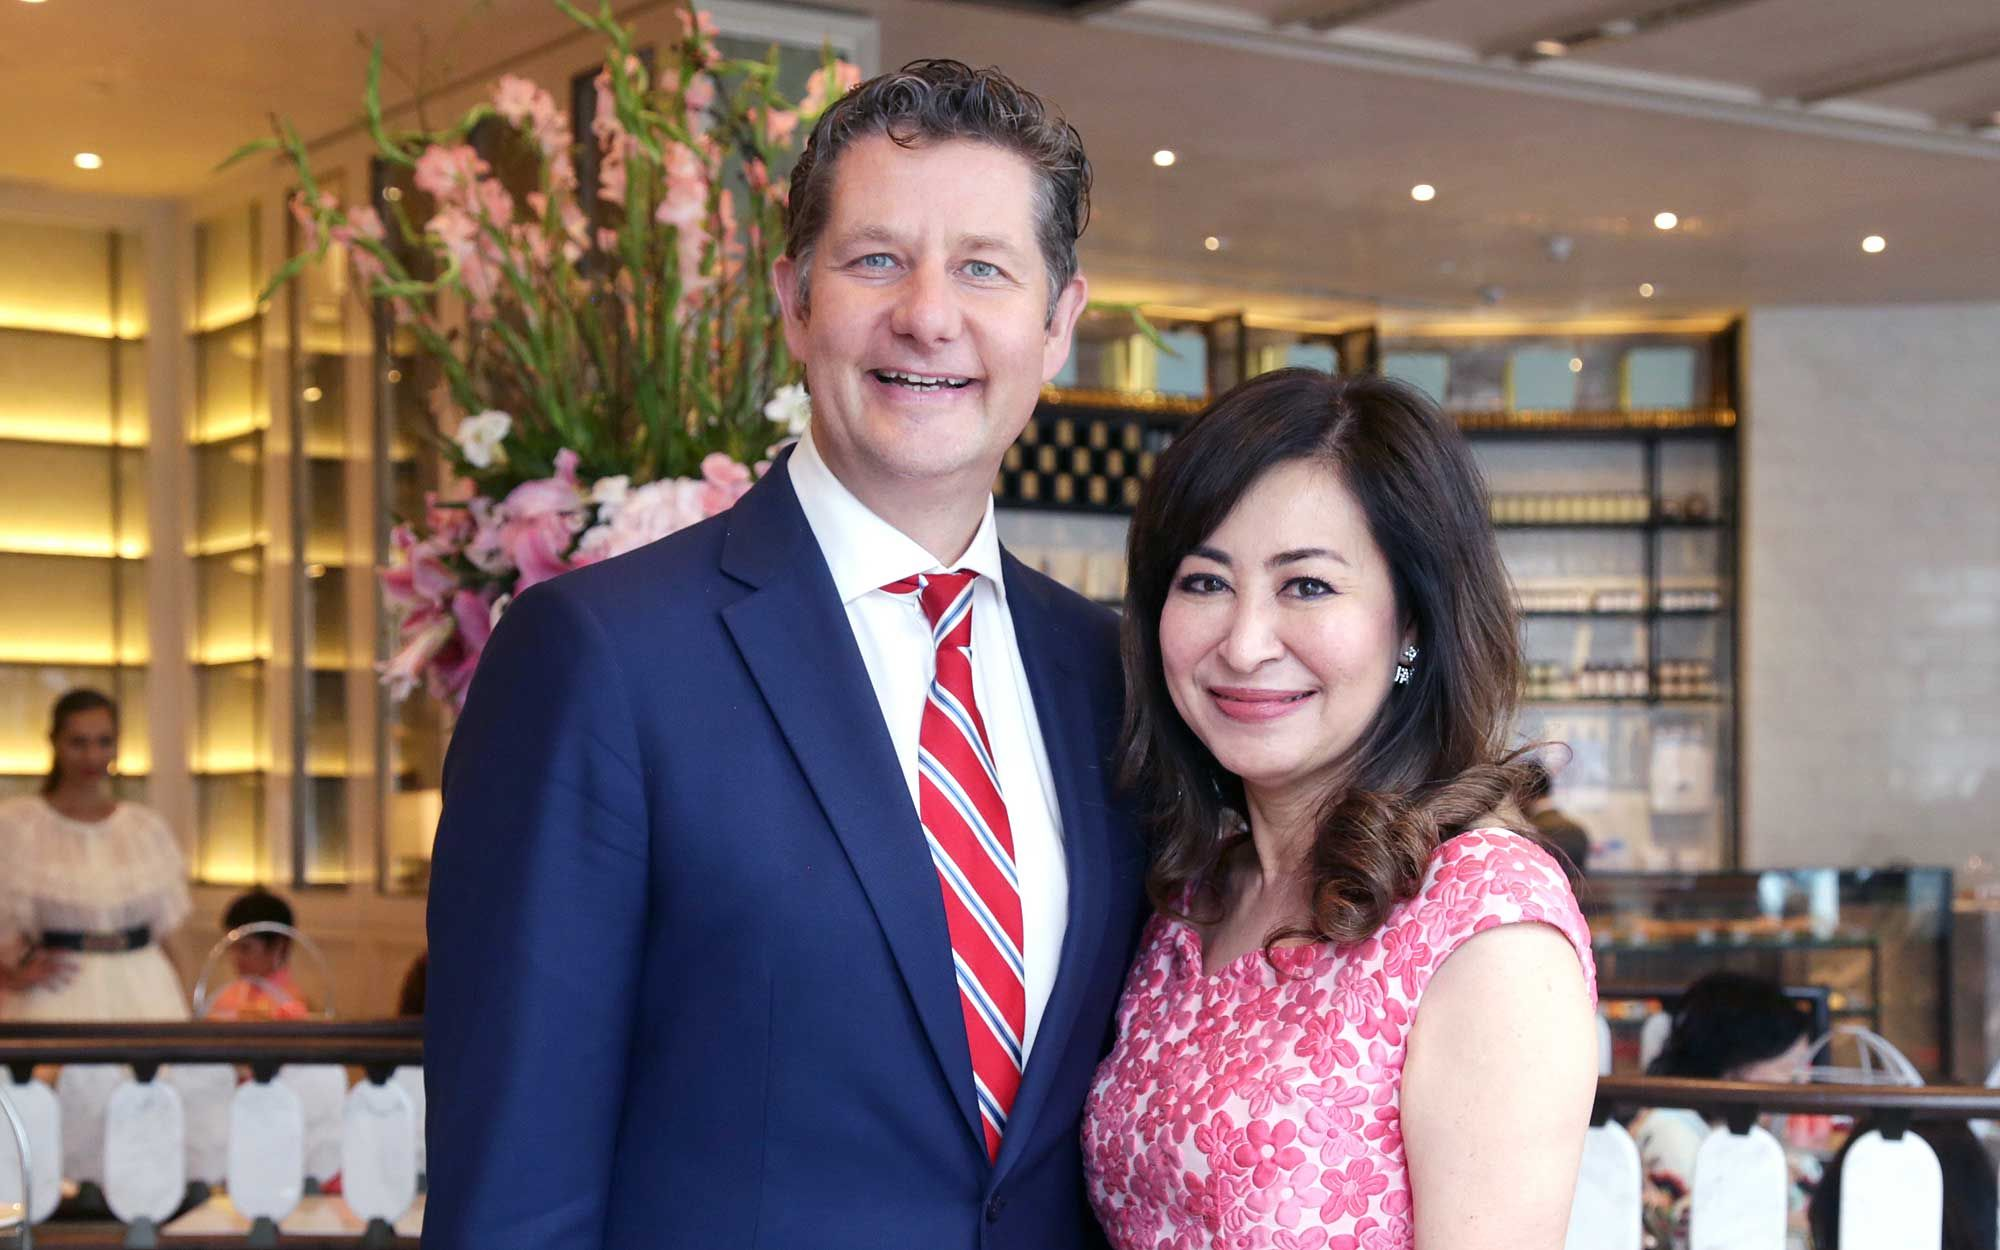 Tom Roelens and Vivienne Cheng